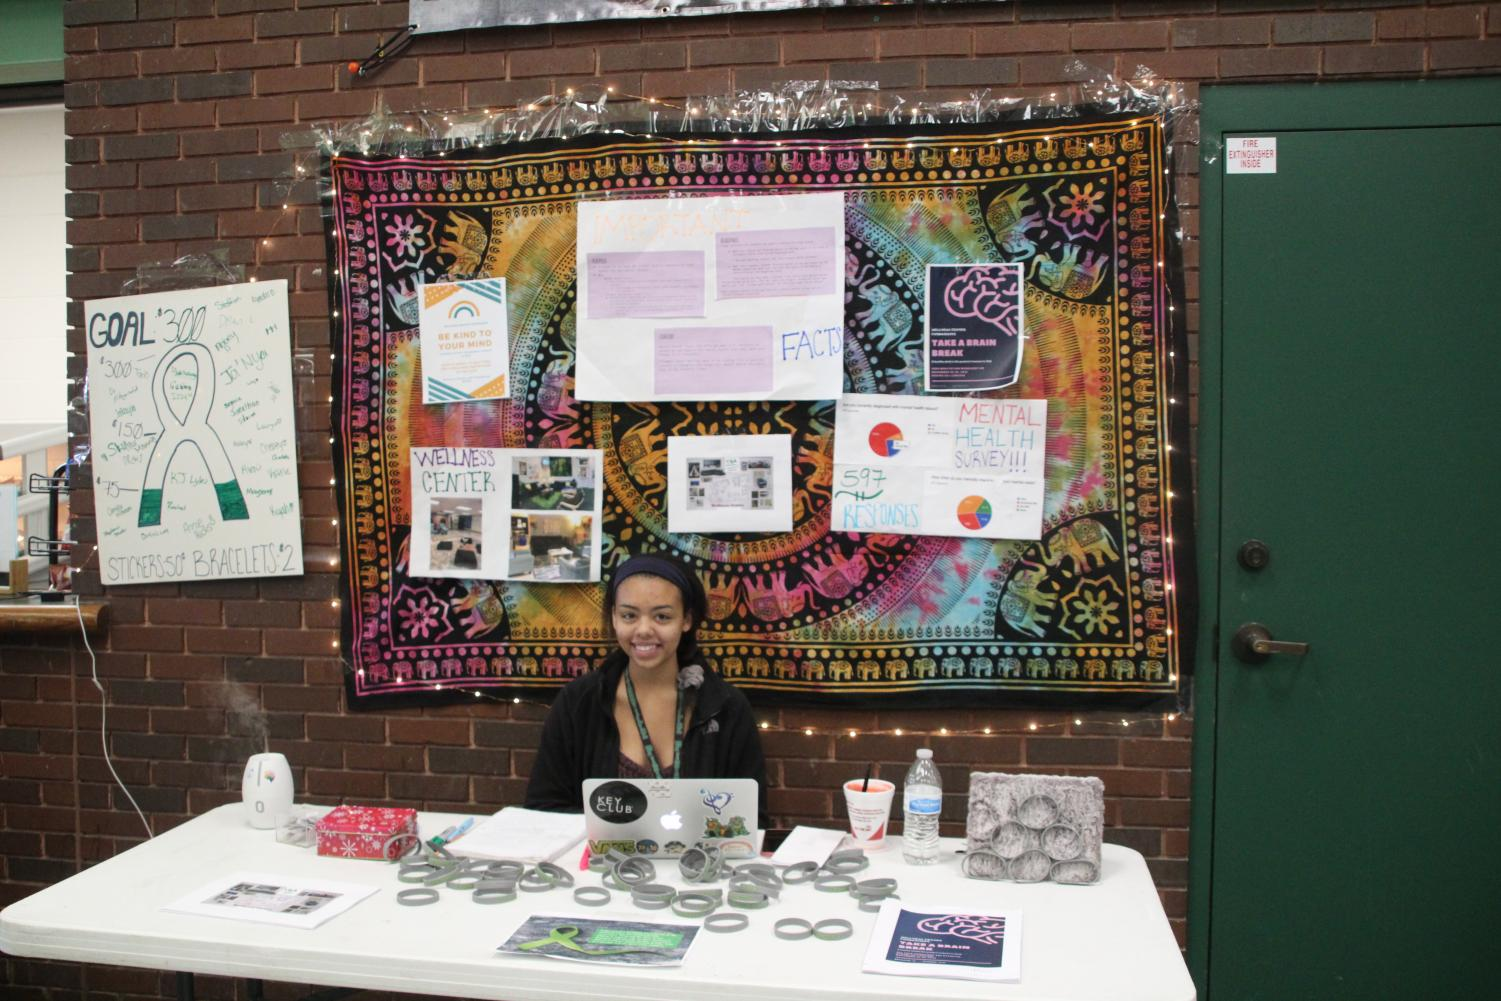 Xmiena Rogers sells bands and stickers to raise money for her wellness center.